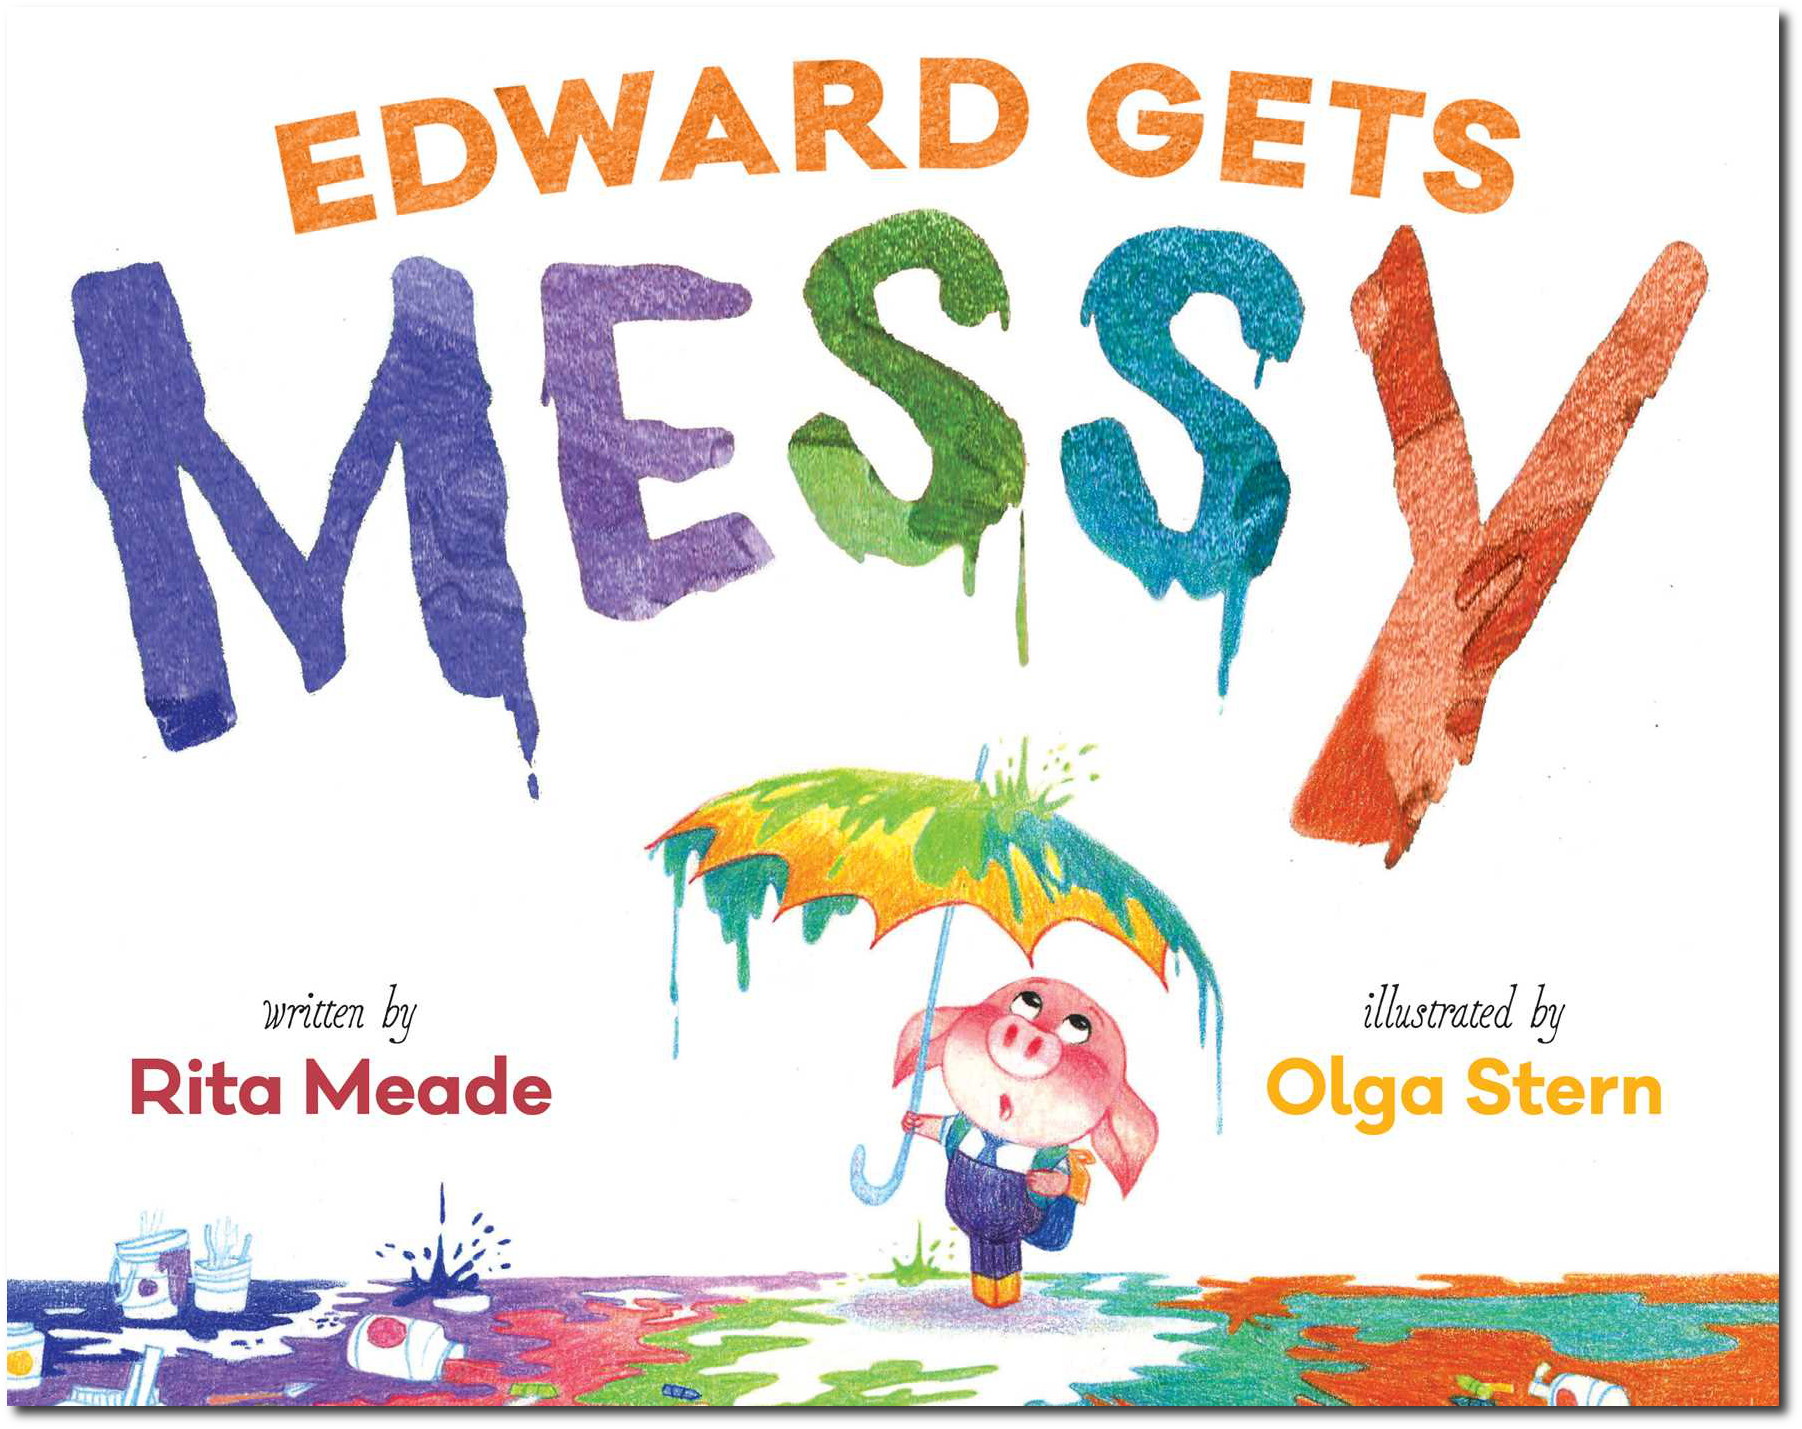 Read more Edward Gets Messy  »